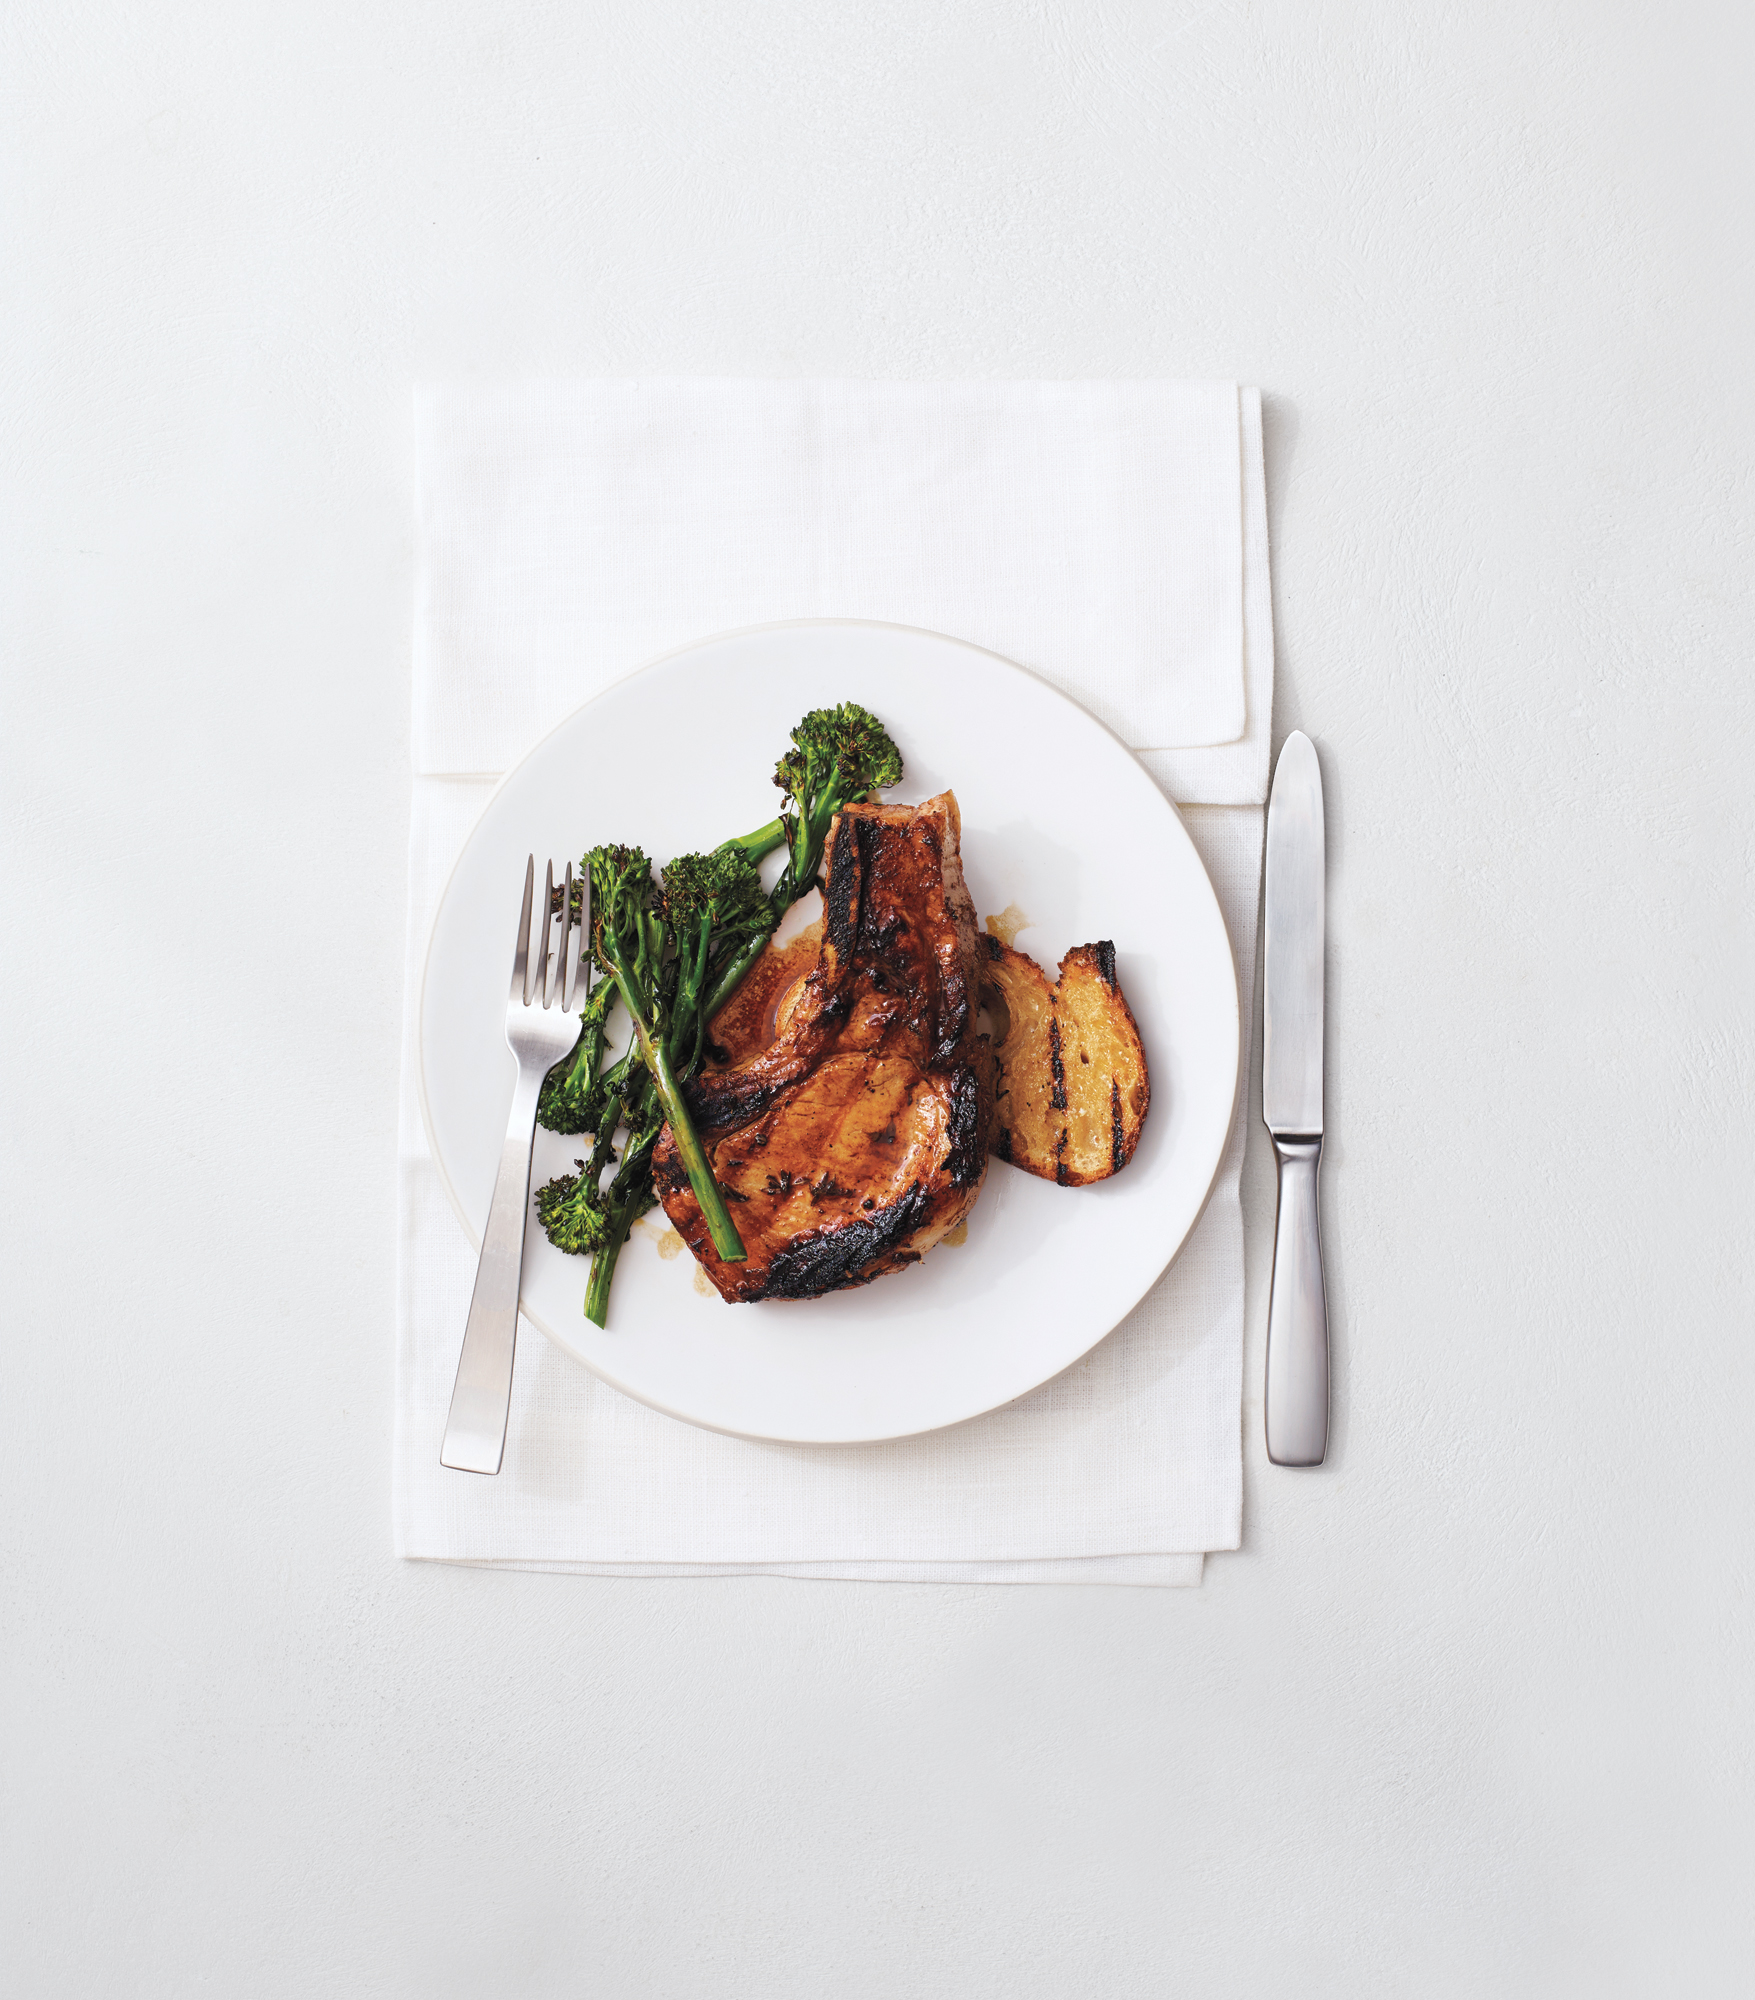 pork-chops-broccolini-sourdough-bread